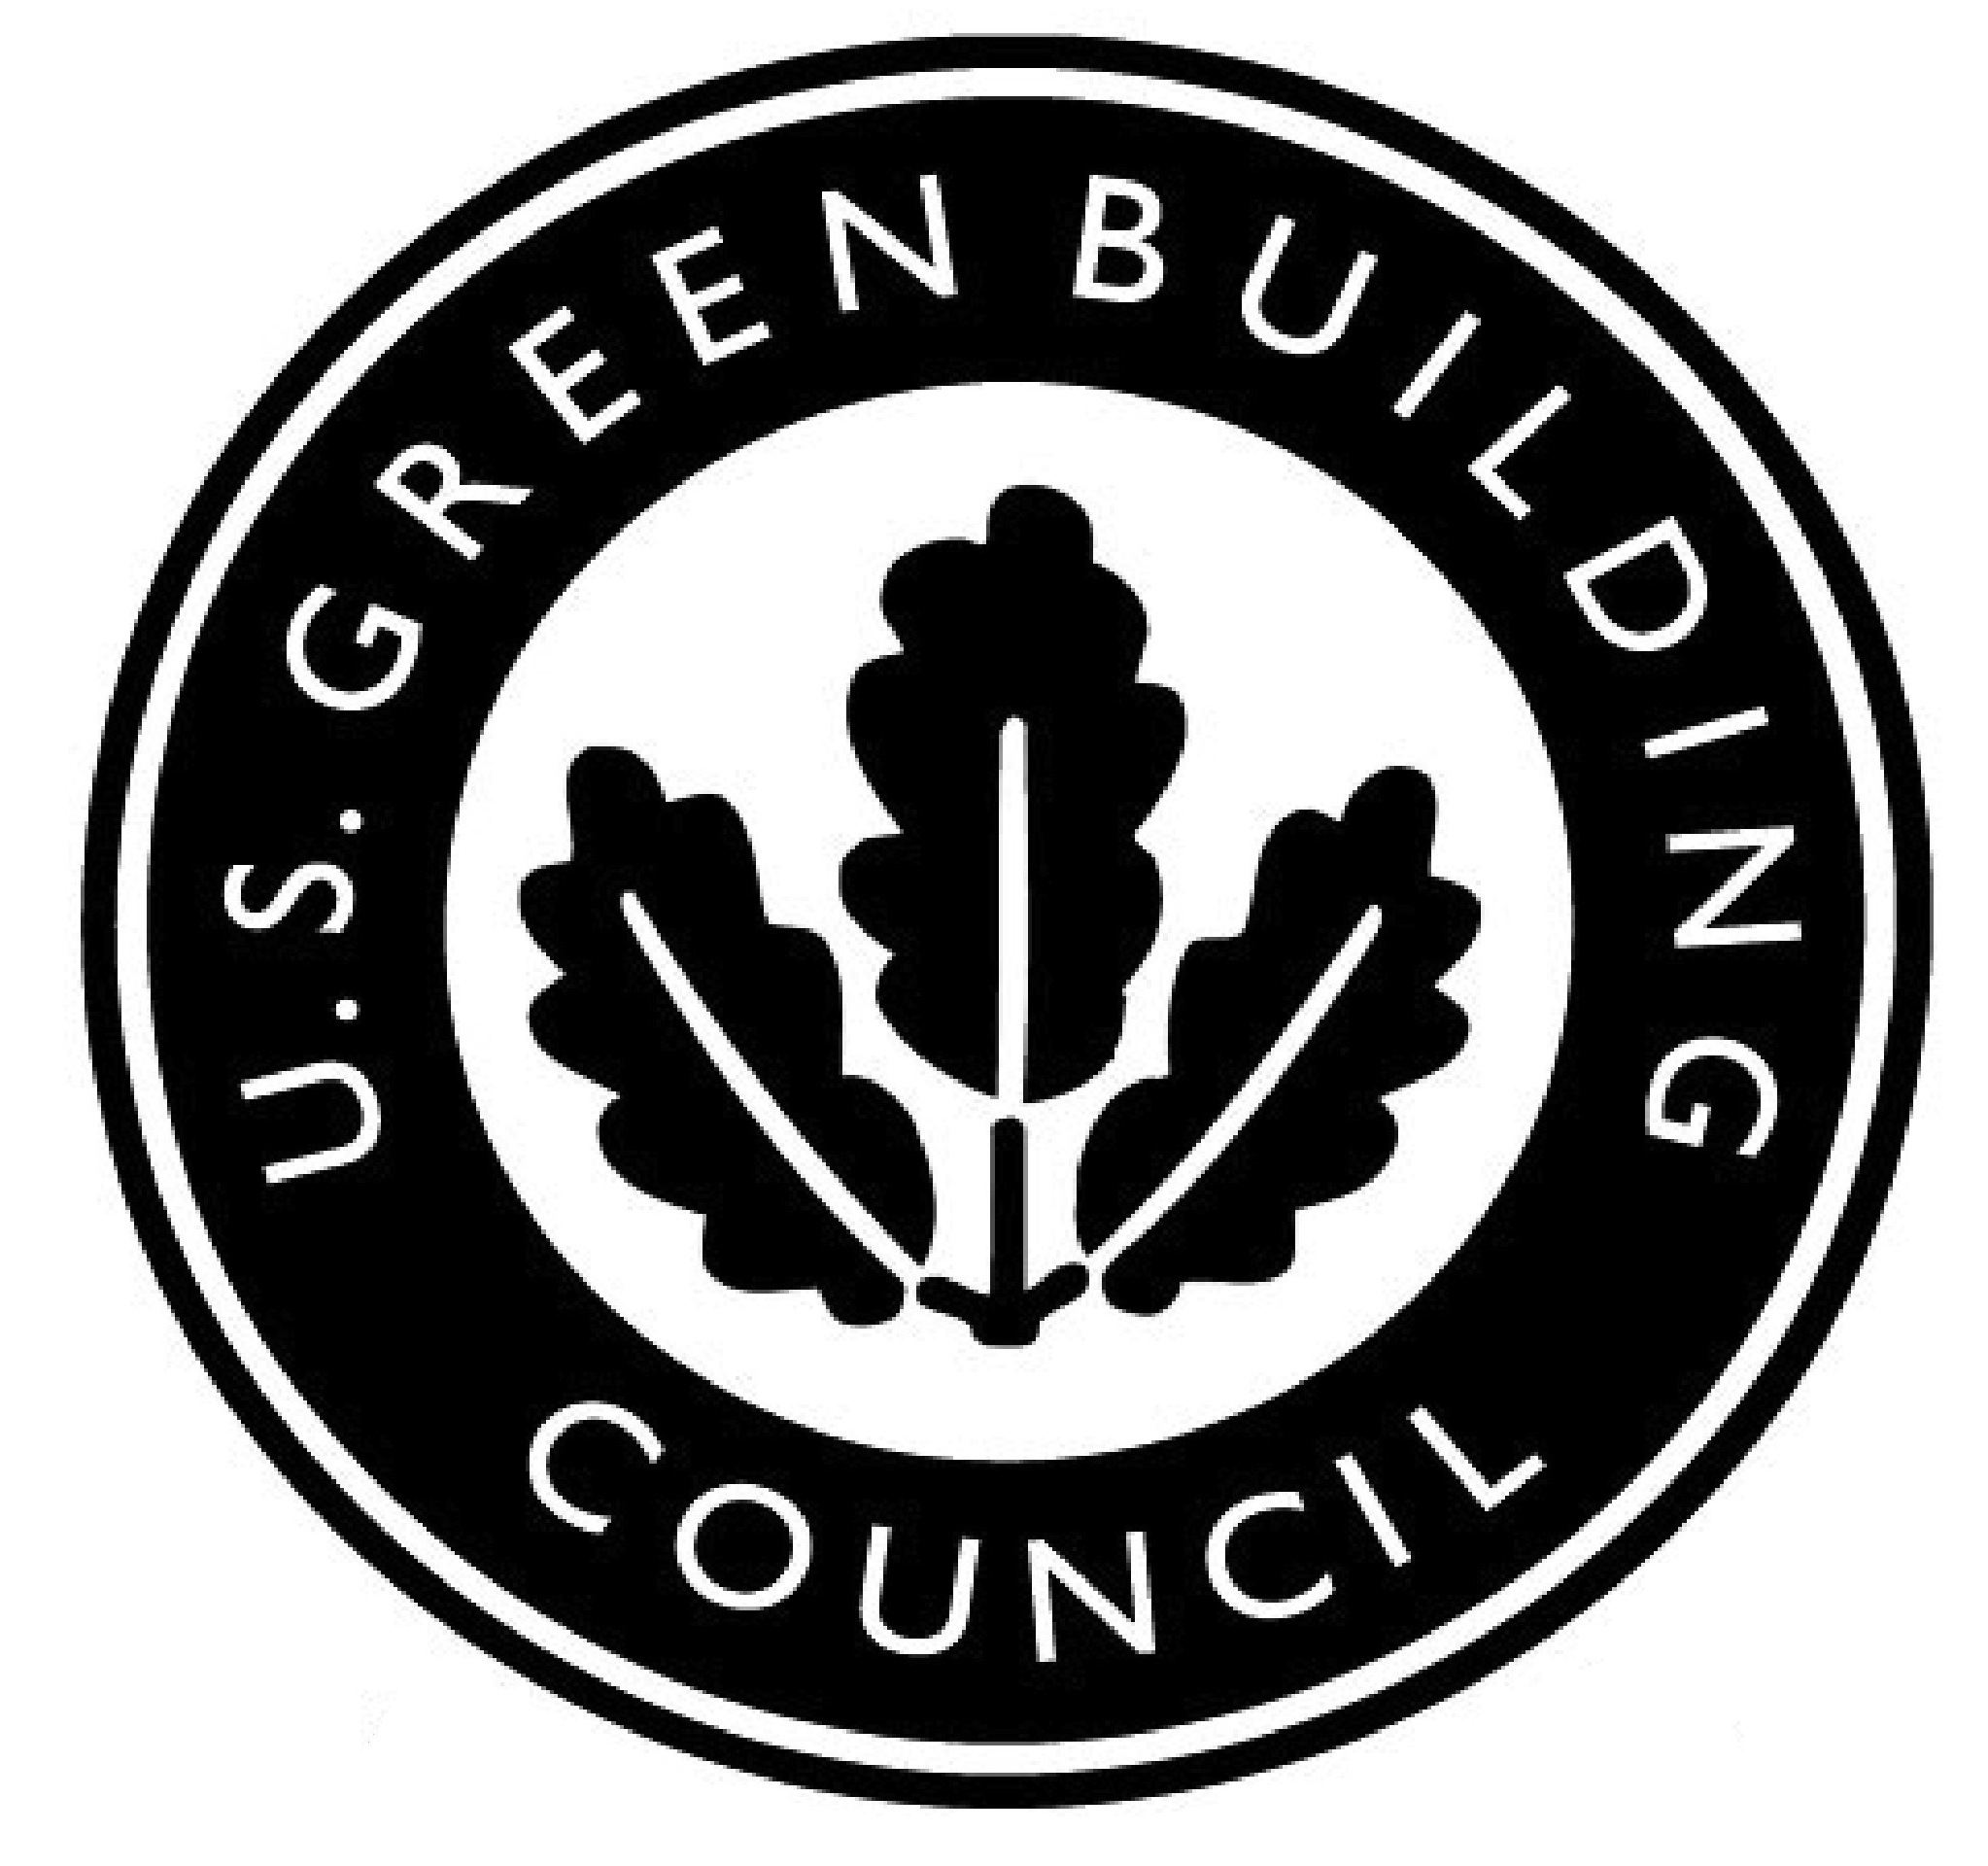 U S Green Building Council In